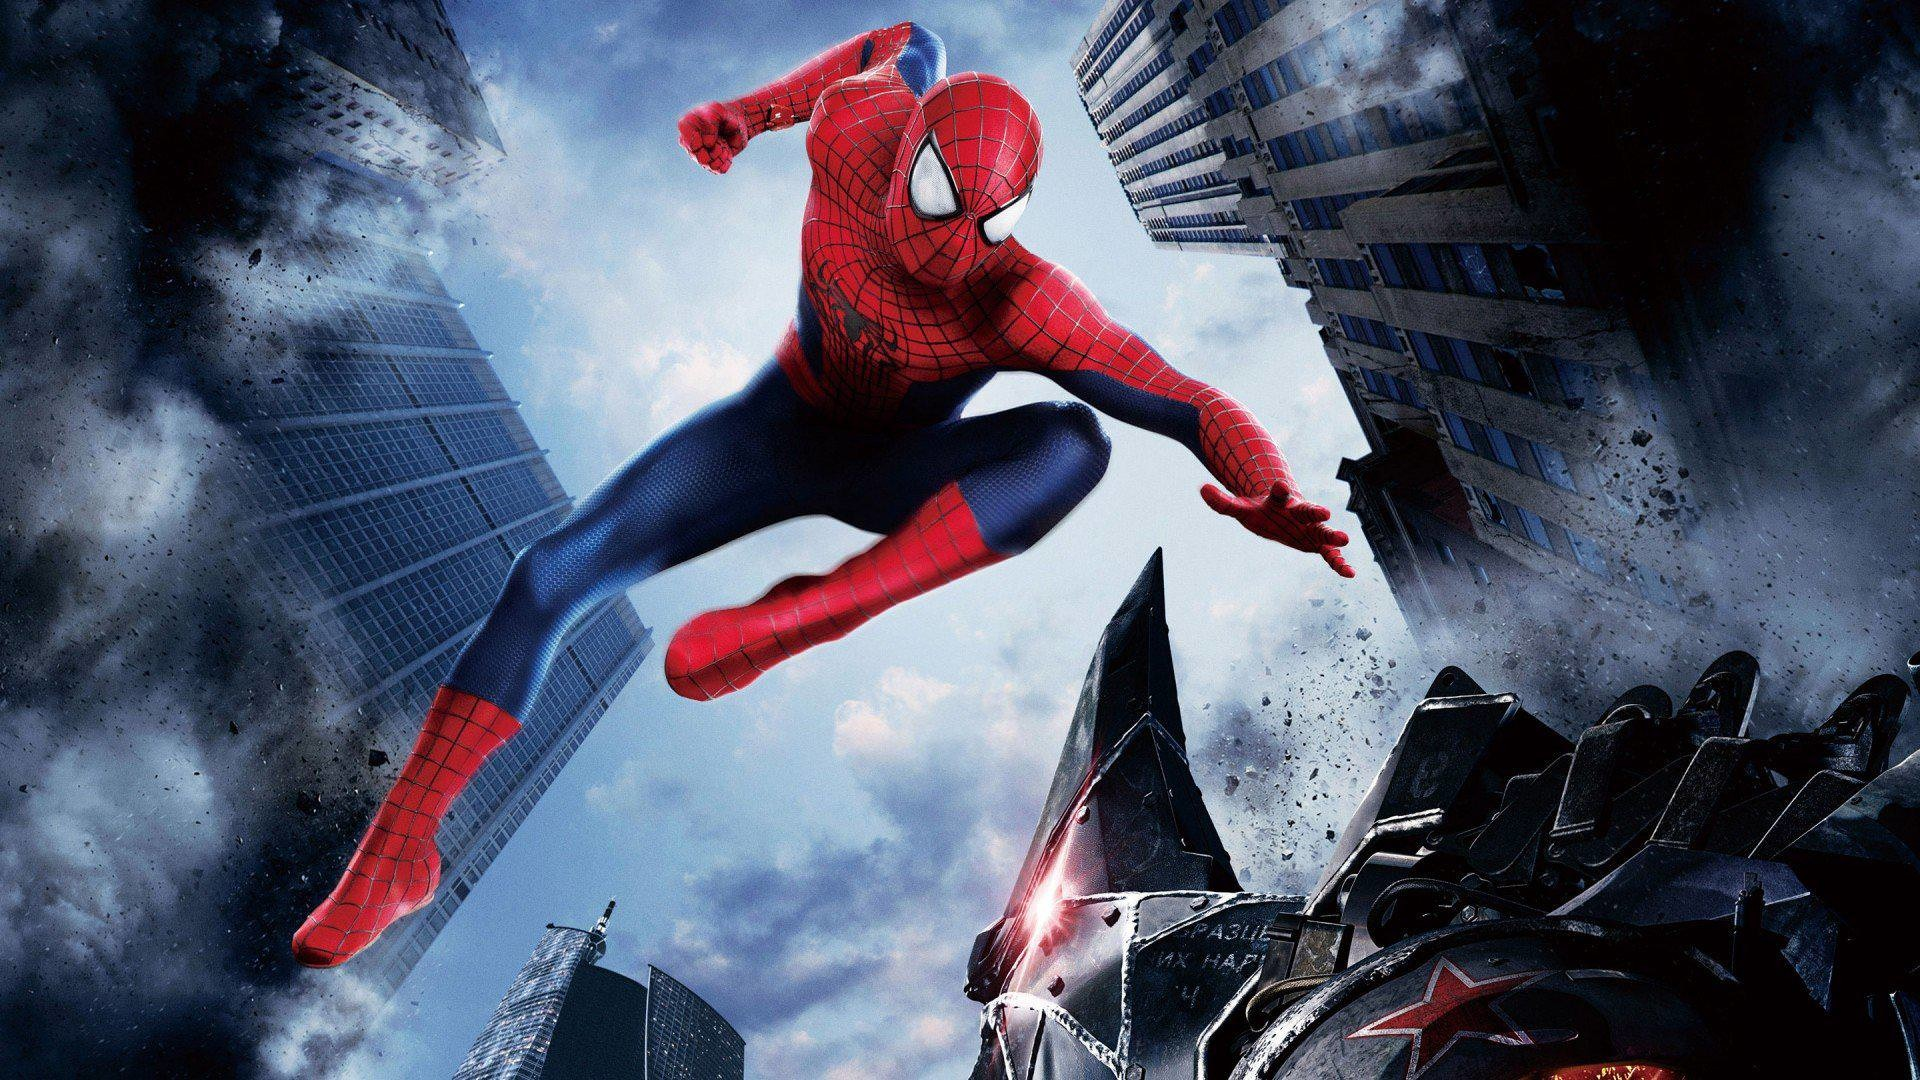 1920x1080 amazing_spider_man_action_adventure_fantasy_movie_marvel wallpaper